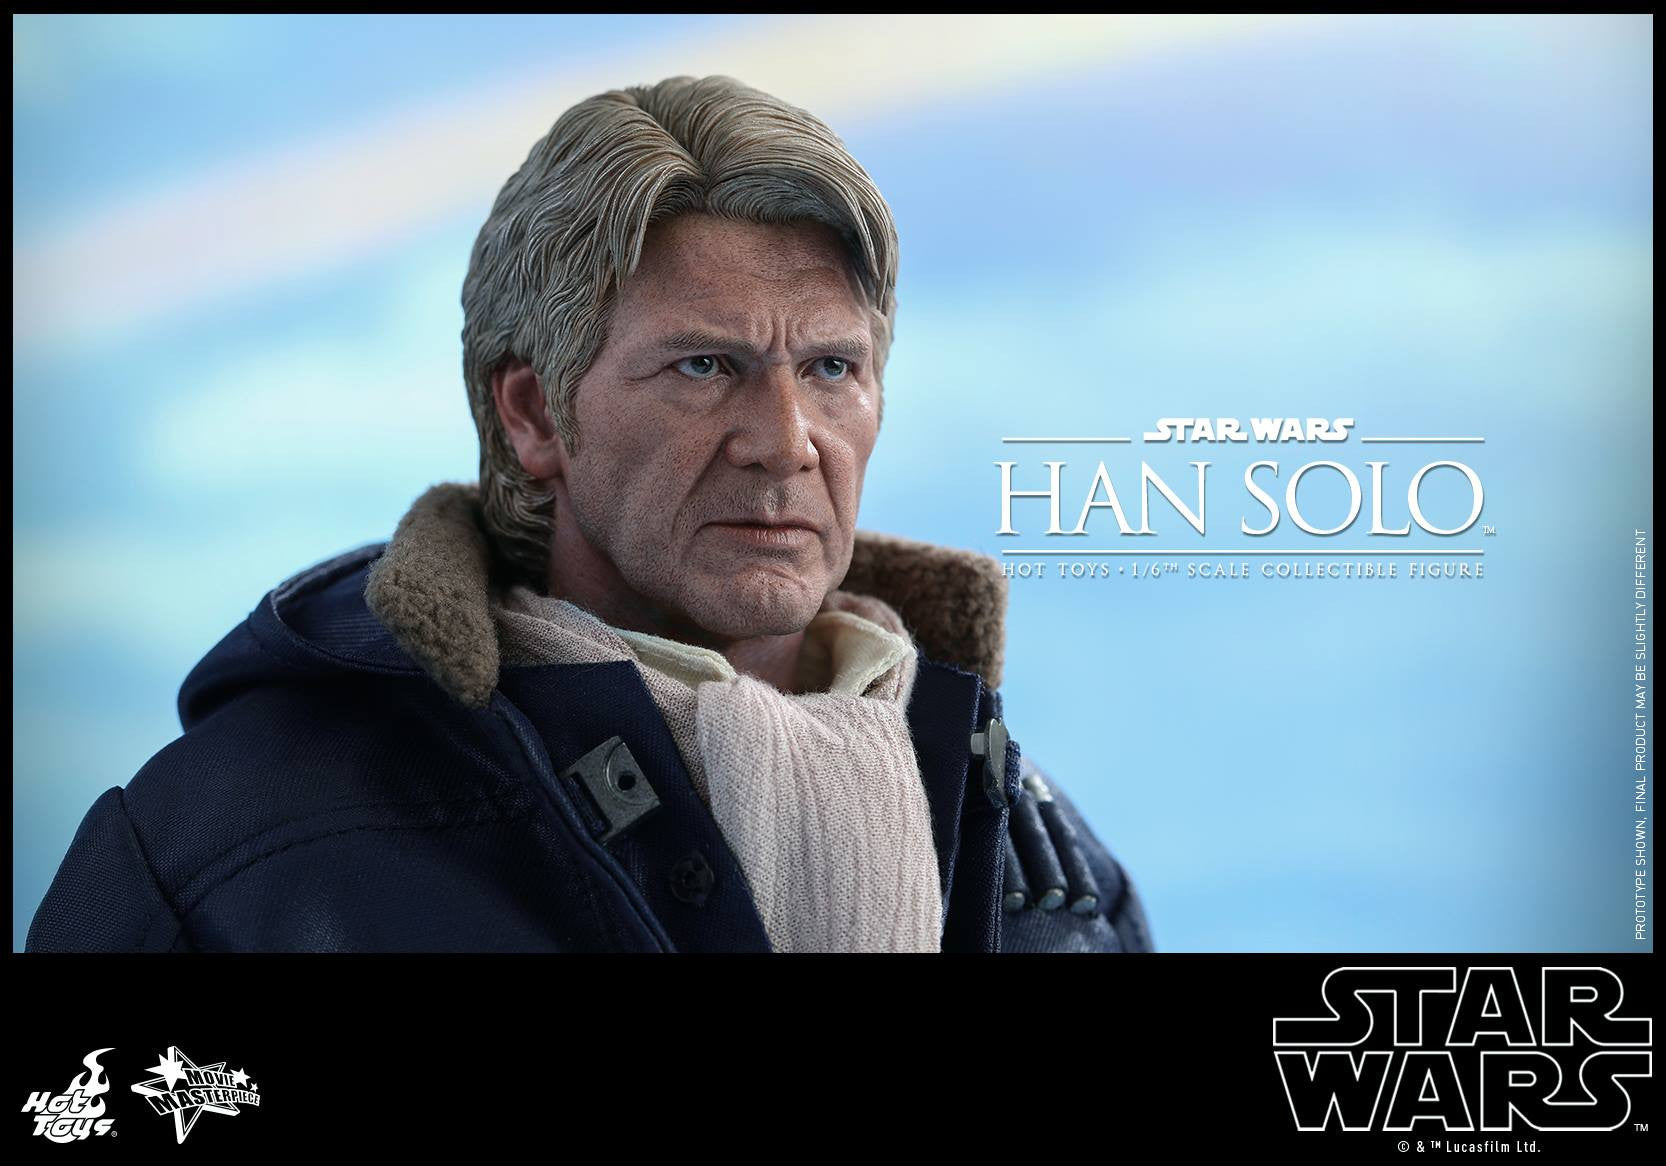 Hot Toys - MMS374 - Star Wars: The Force Awakens - Han Solo - Marvelous Toys - 12